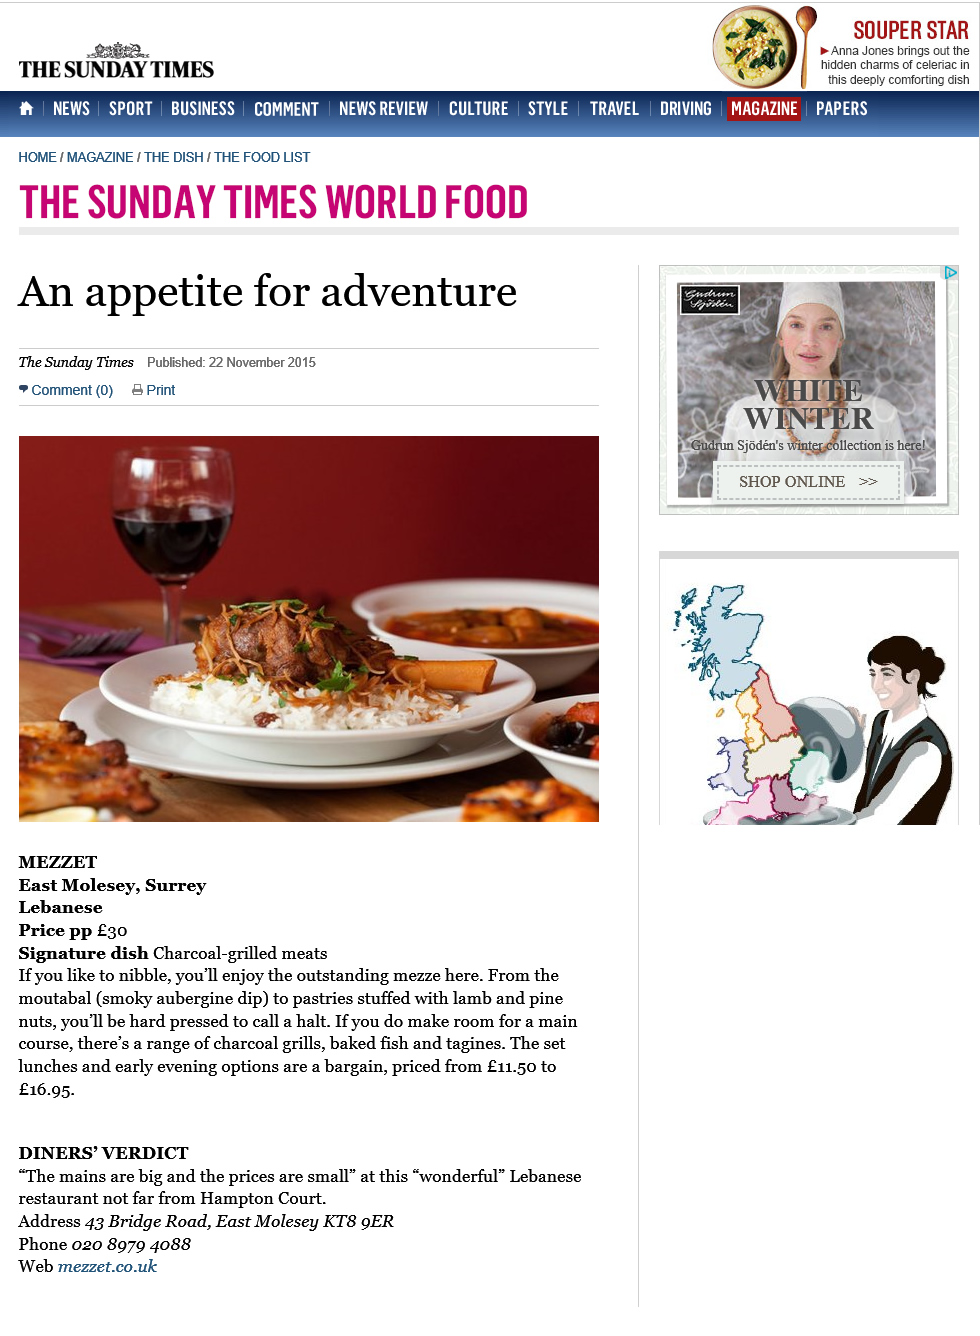 Mezzet Lebanese Restaurant - East Molesey - Sunday Times article